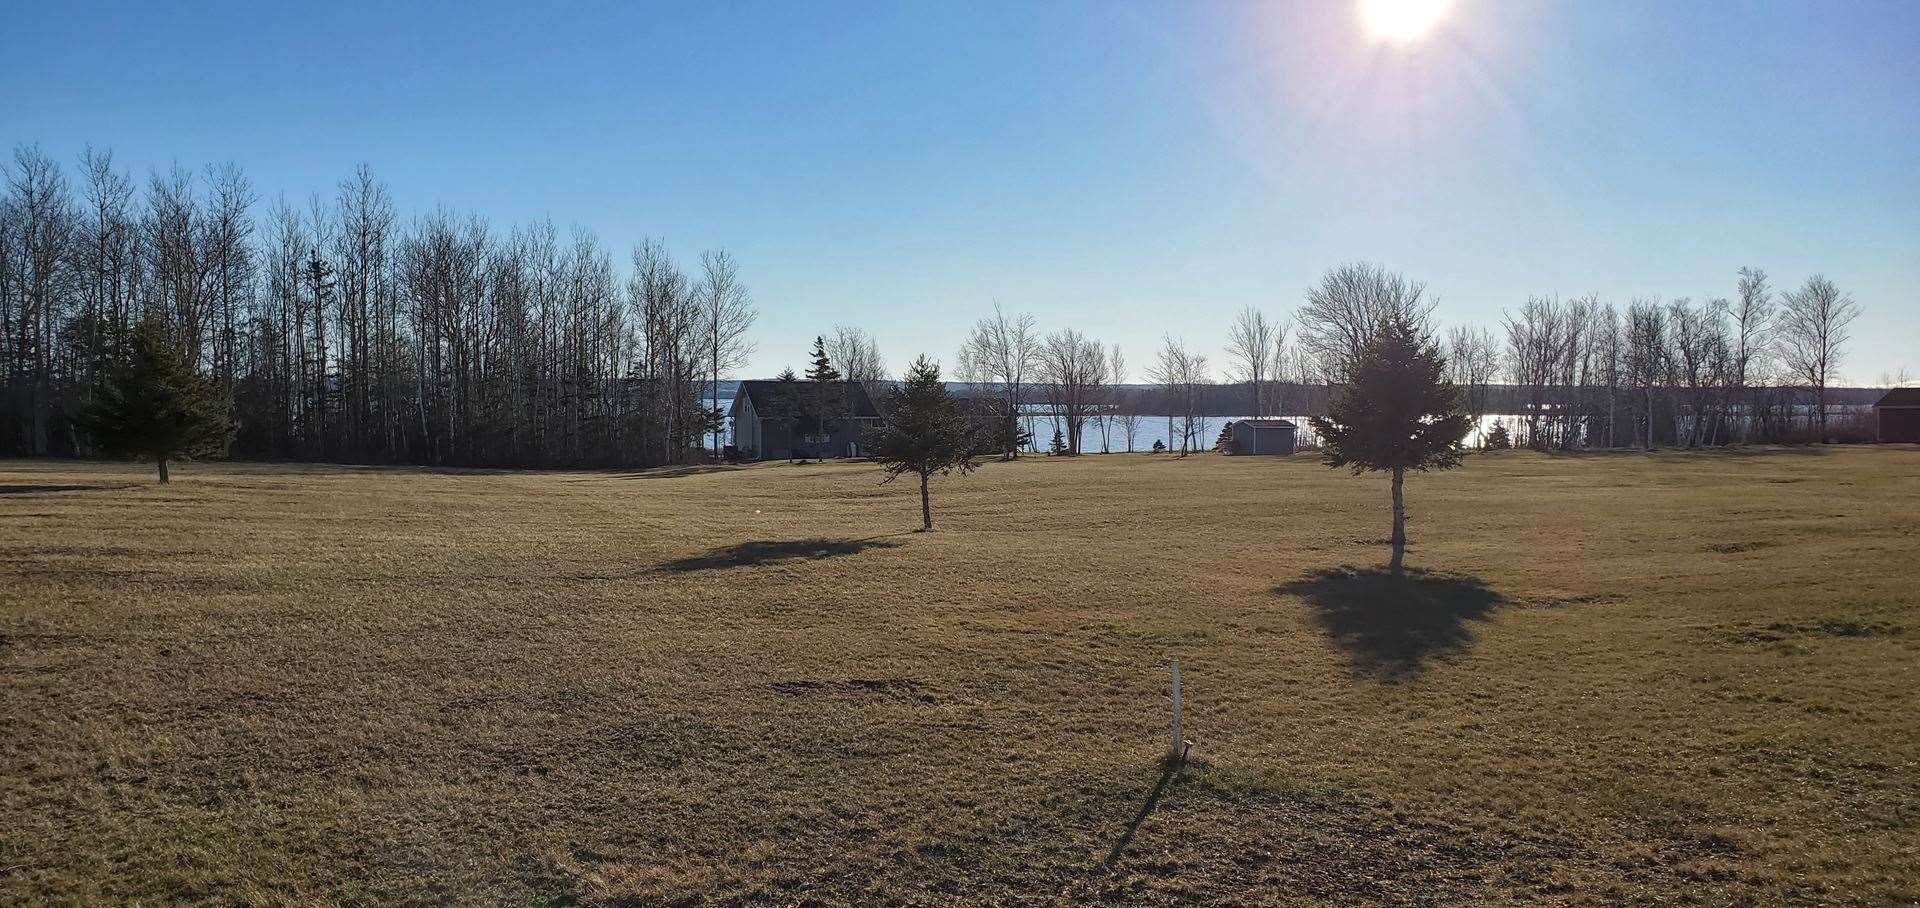 Main Photo: lot 4-12 Fox Harbour Road in Fox Harbour: 103-Malagash, Wentworth Vacant Land for sale (Northern Region)  : MLS®# 202105465